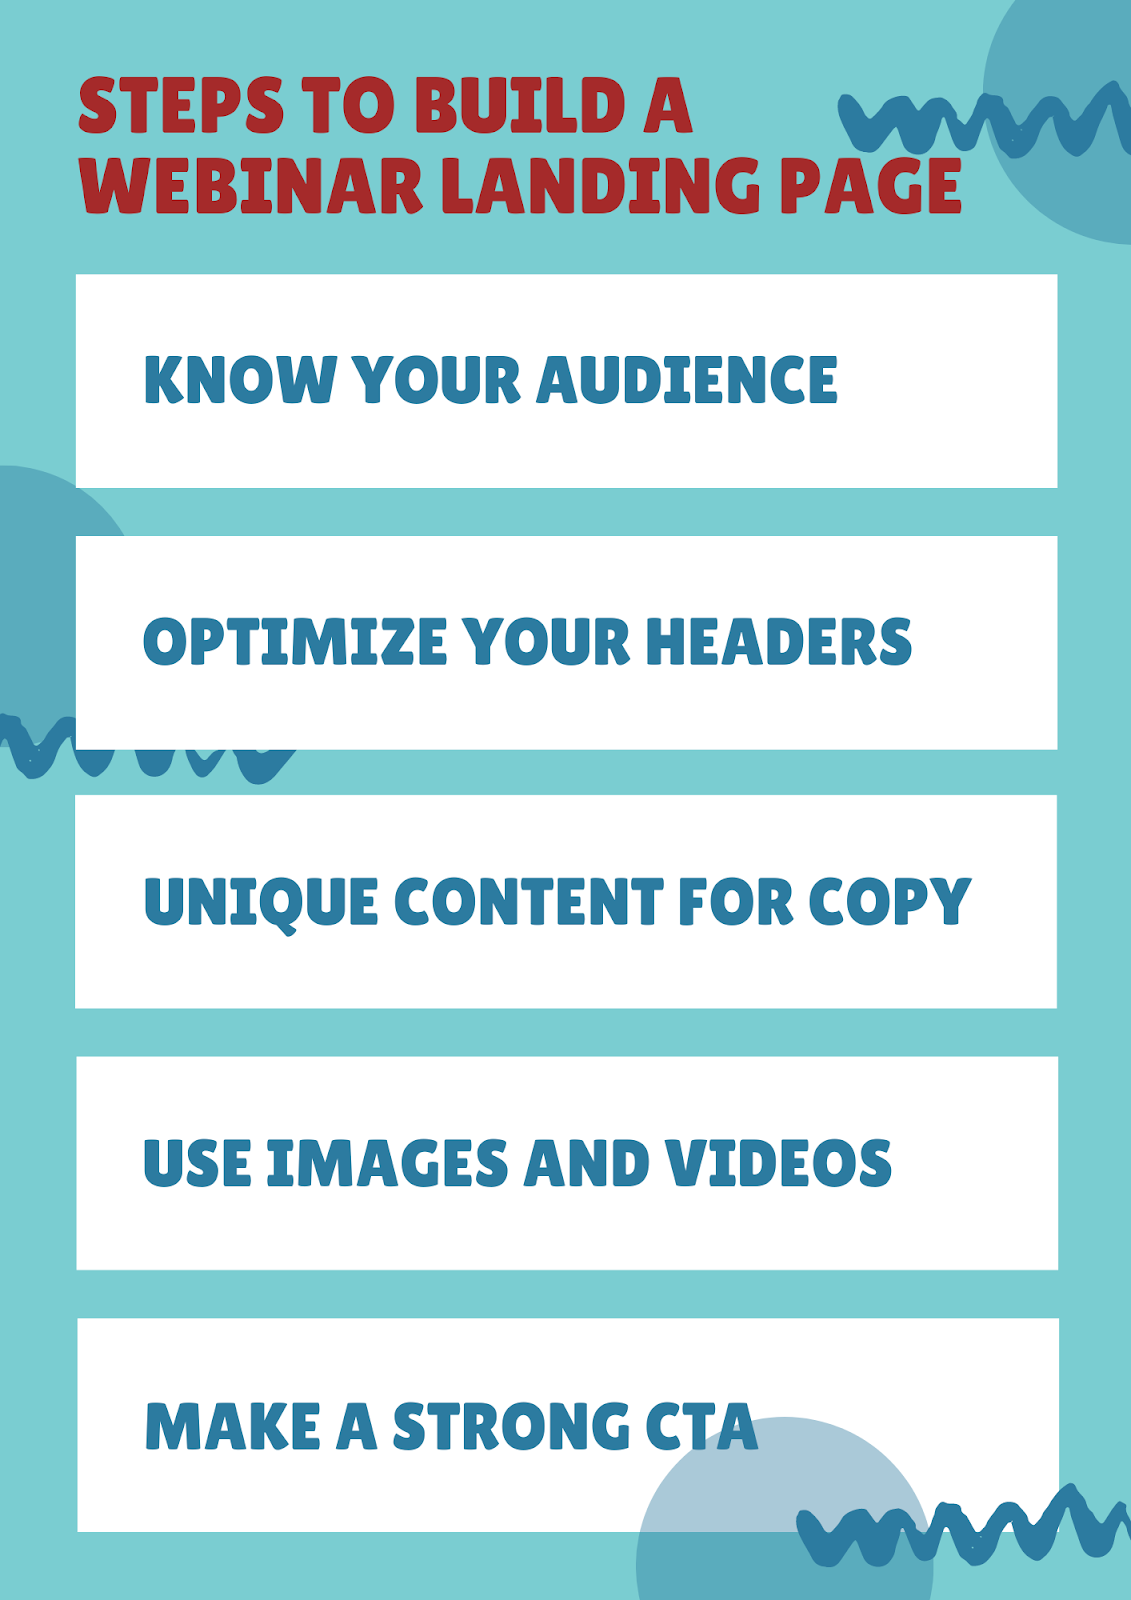 Steps to Build a Webinar Landing Page